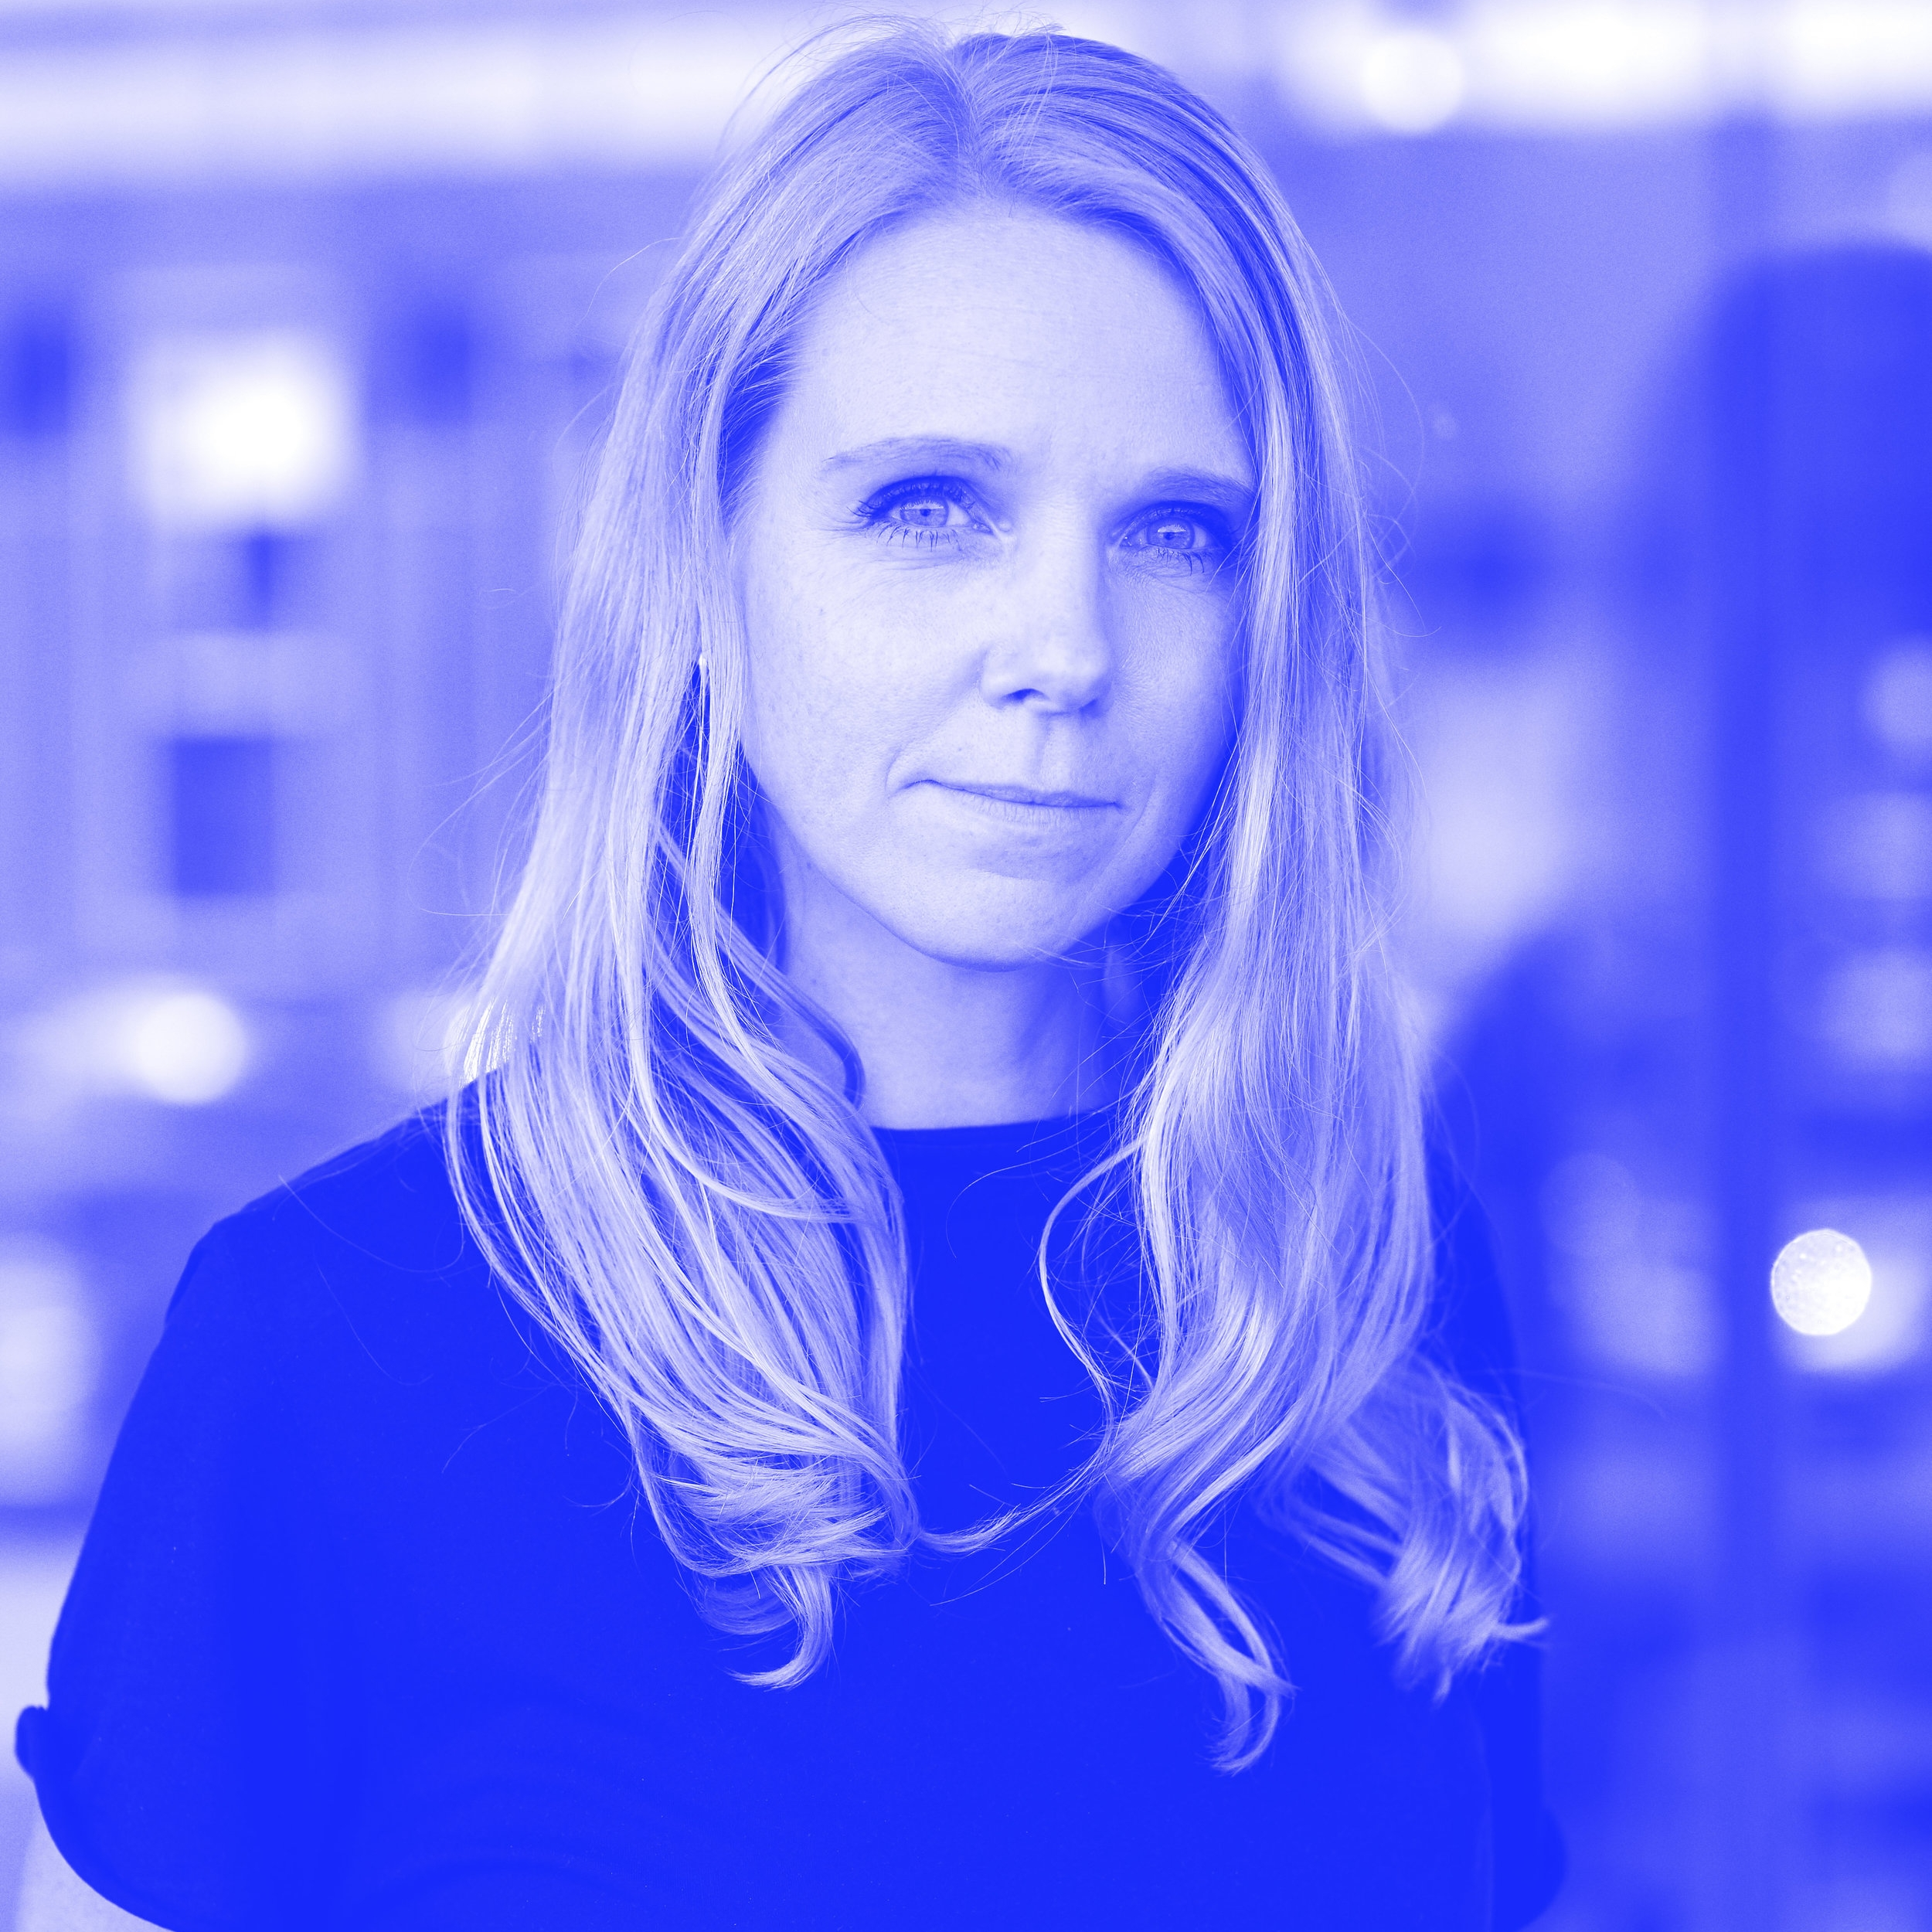 Camilla Jørgensen - Sustainable Sourcing Manager, SELECTED -Camilla is turning the Danish high street brand from sustainable ambitions into action as an intrapreneur in a very large organisation. Camilla has 13 years of experience in the industry as both a buyer and a designer as well as on a management level. She initiated 'Green Attitude by VERO MODA' (now VERO MODA AWARE), and is now working on turning the entire brand SELECTED in a more sustainable direction.